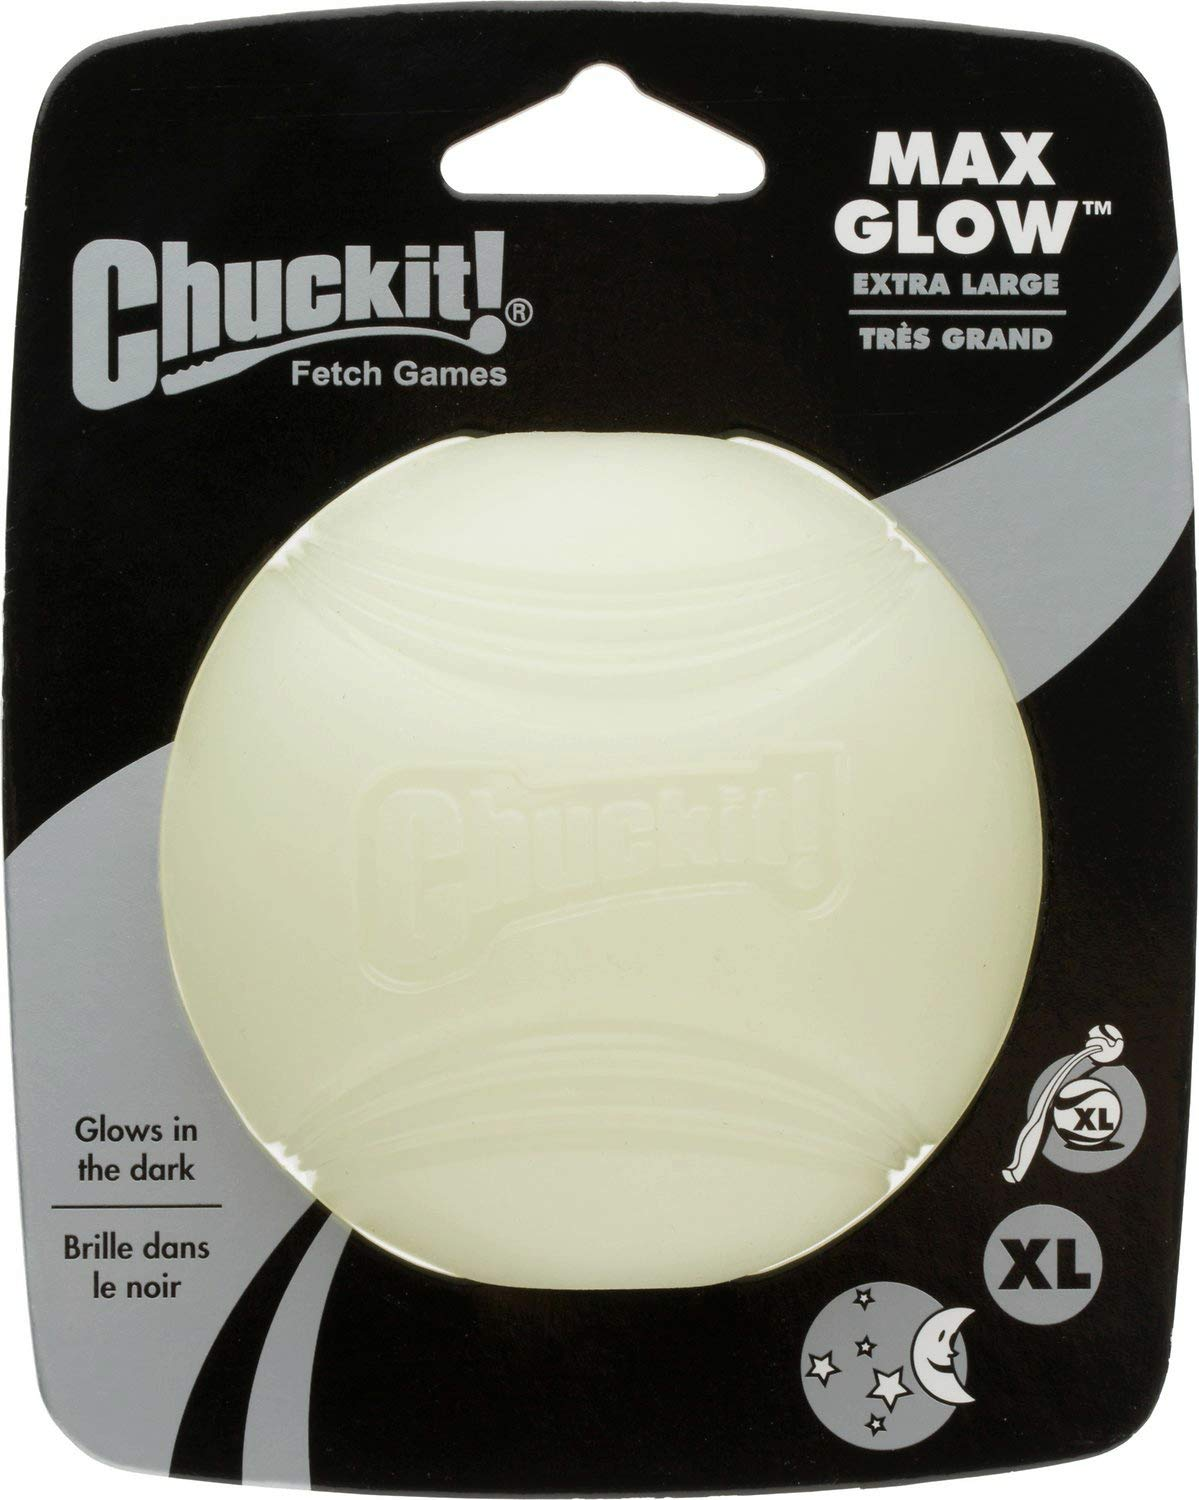 Chuckit! Max Glow Ball Dog Toy, X-Large, 12 Pack by Chuckit! (Image #1)